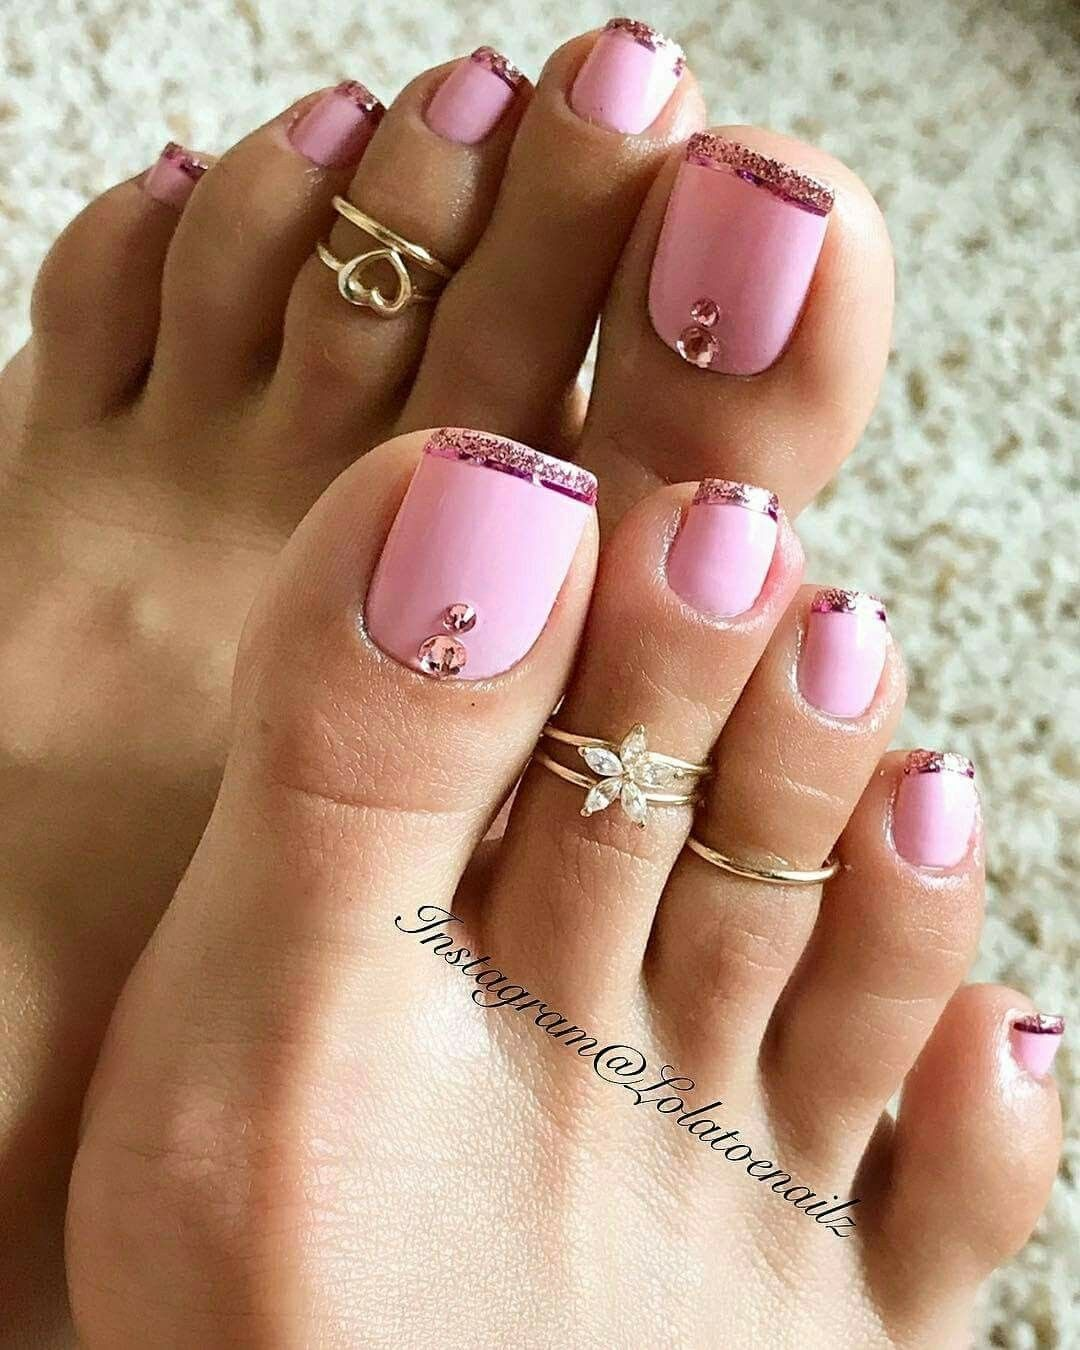 Pin by DAVIDMUSSETT on Ideas for the house | Pinterest | Pedicures ...